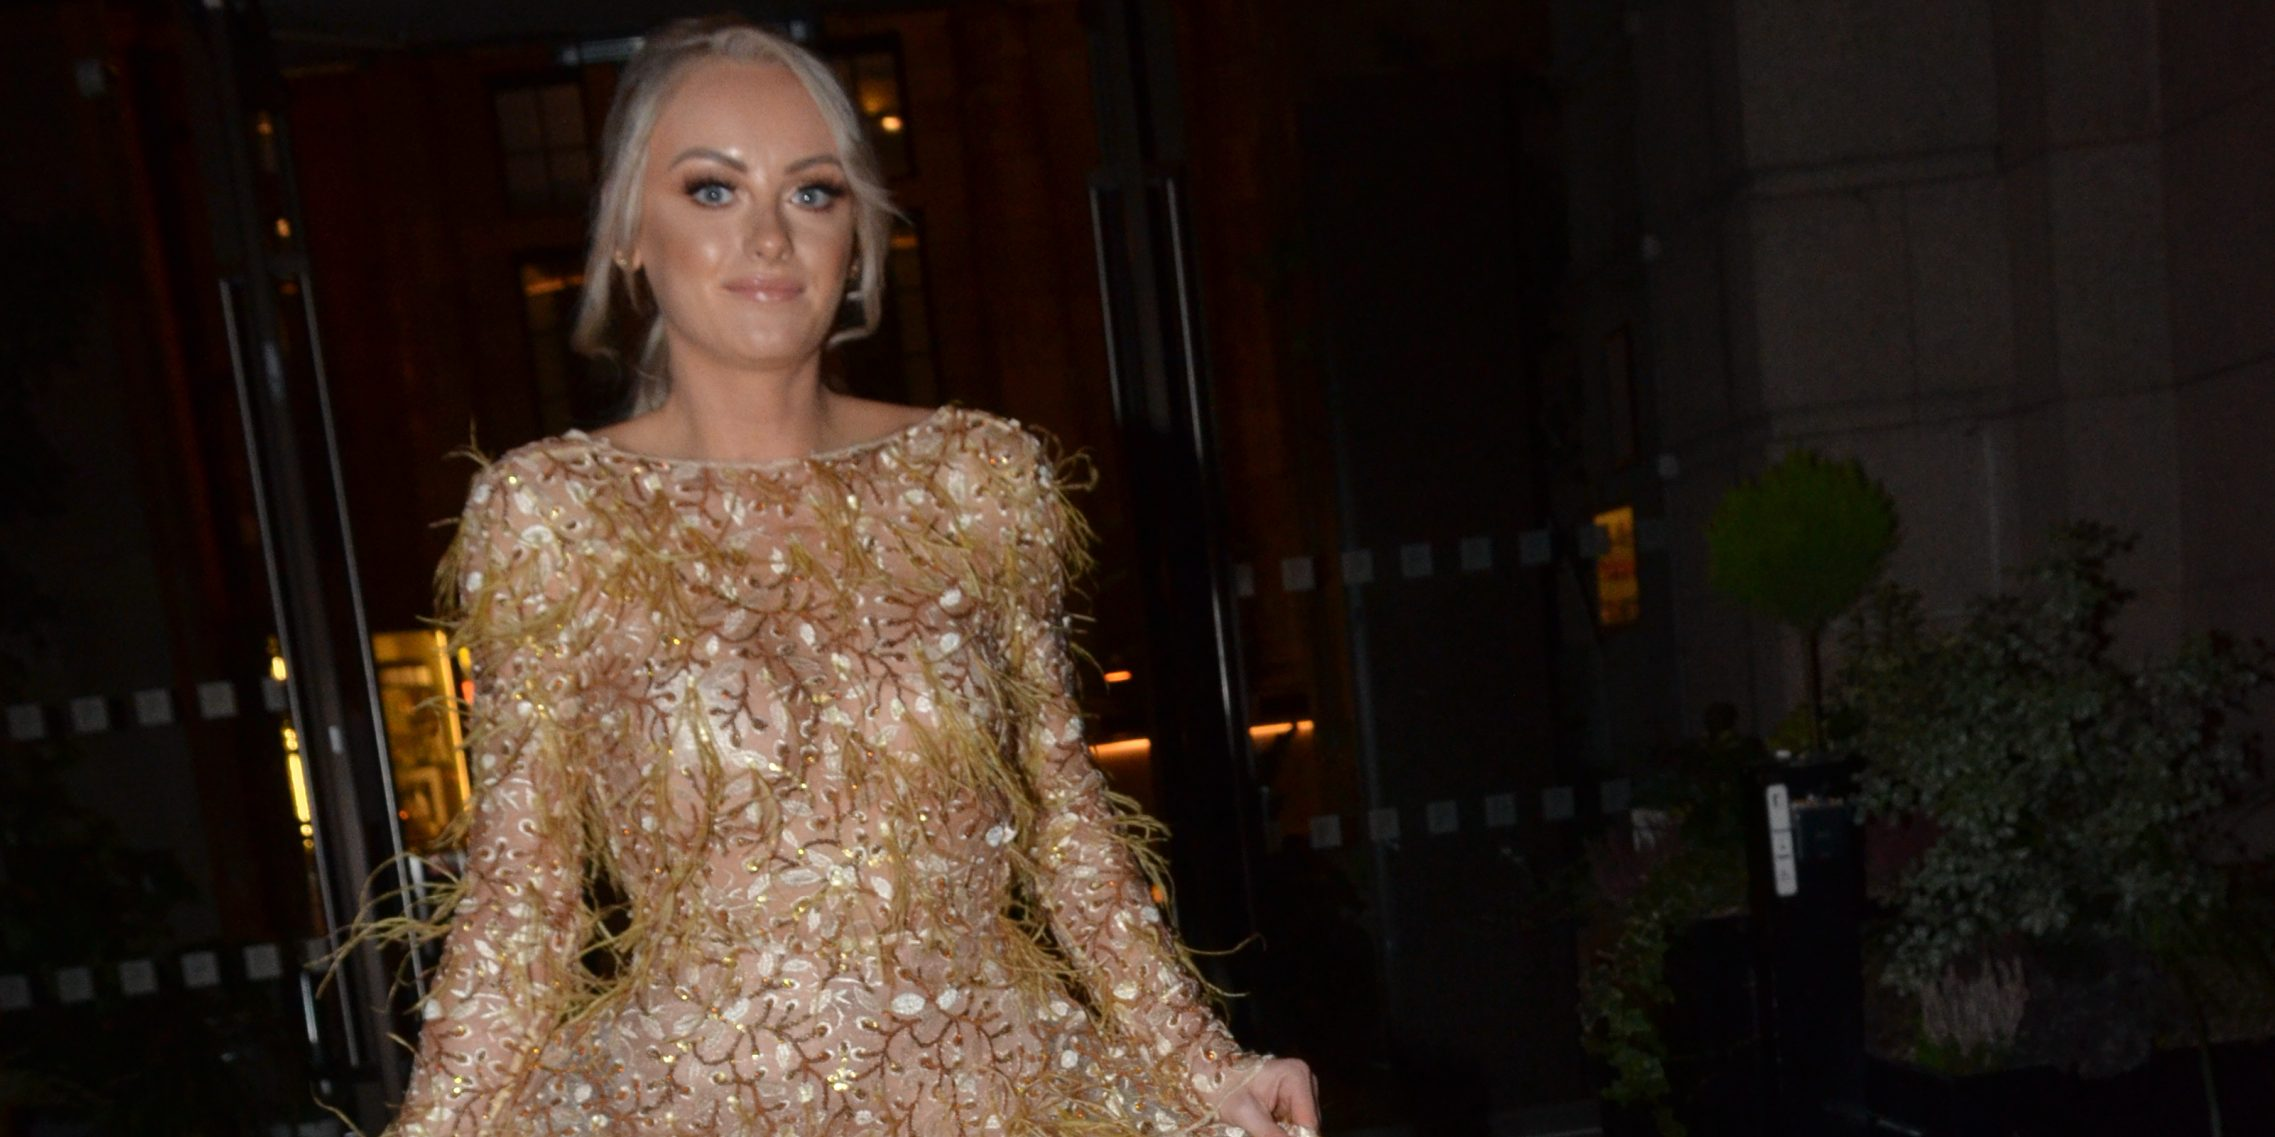 Former Coronation Street star Katie McGlynn shares stunning holiday pictures